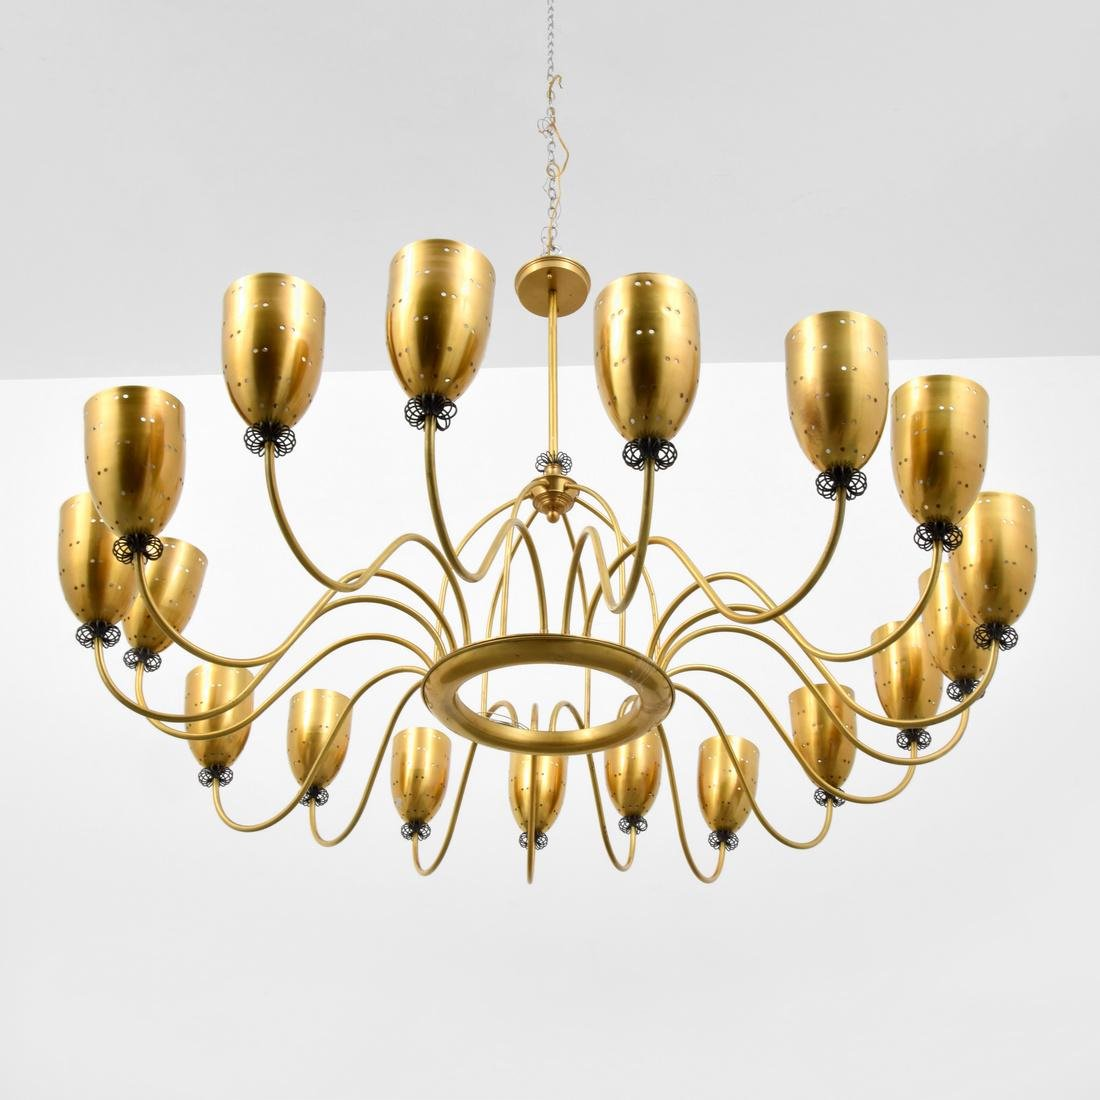 Large Lorin Marsh LASLO Chandelier